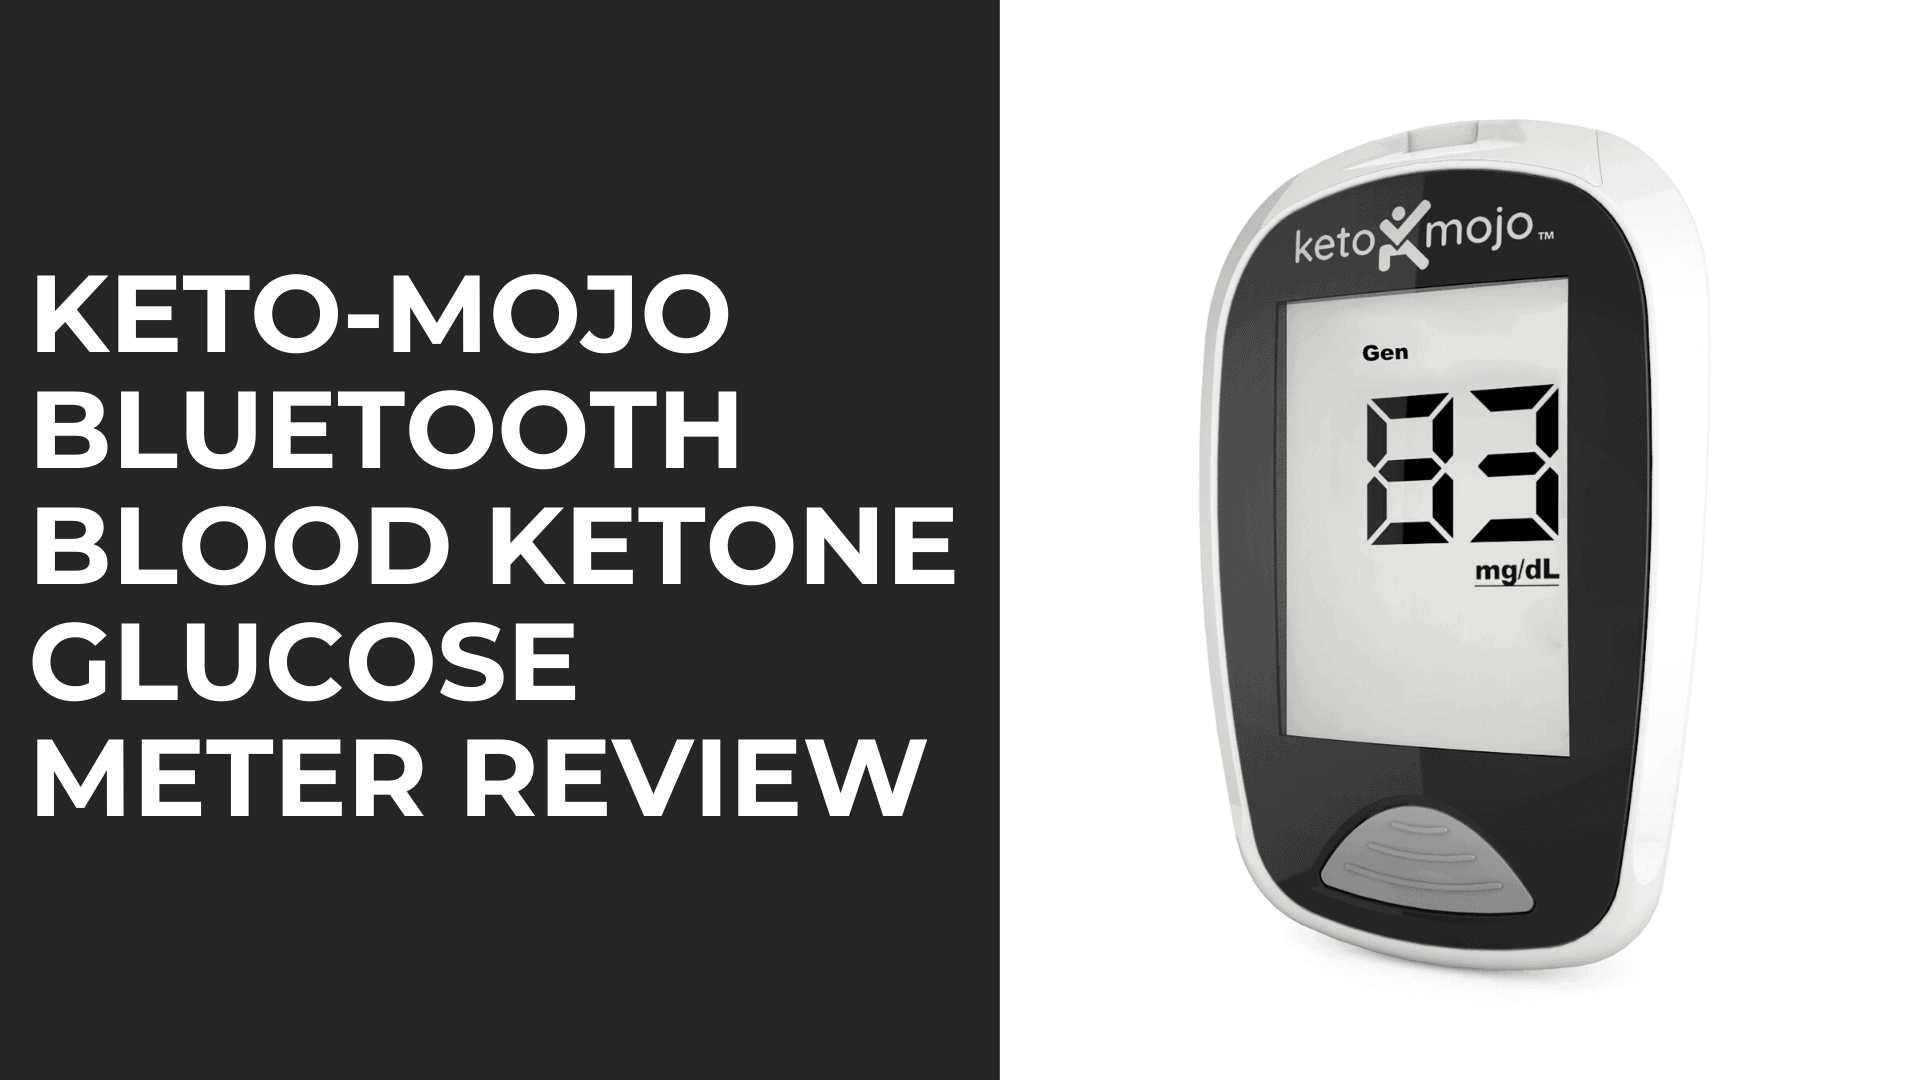 KETO-MOJO Bluetooth Blood Ketone Glucose Meter